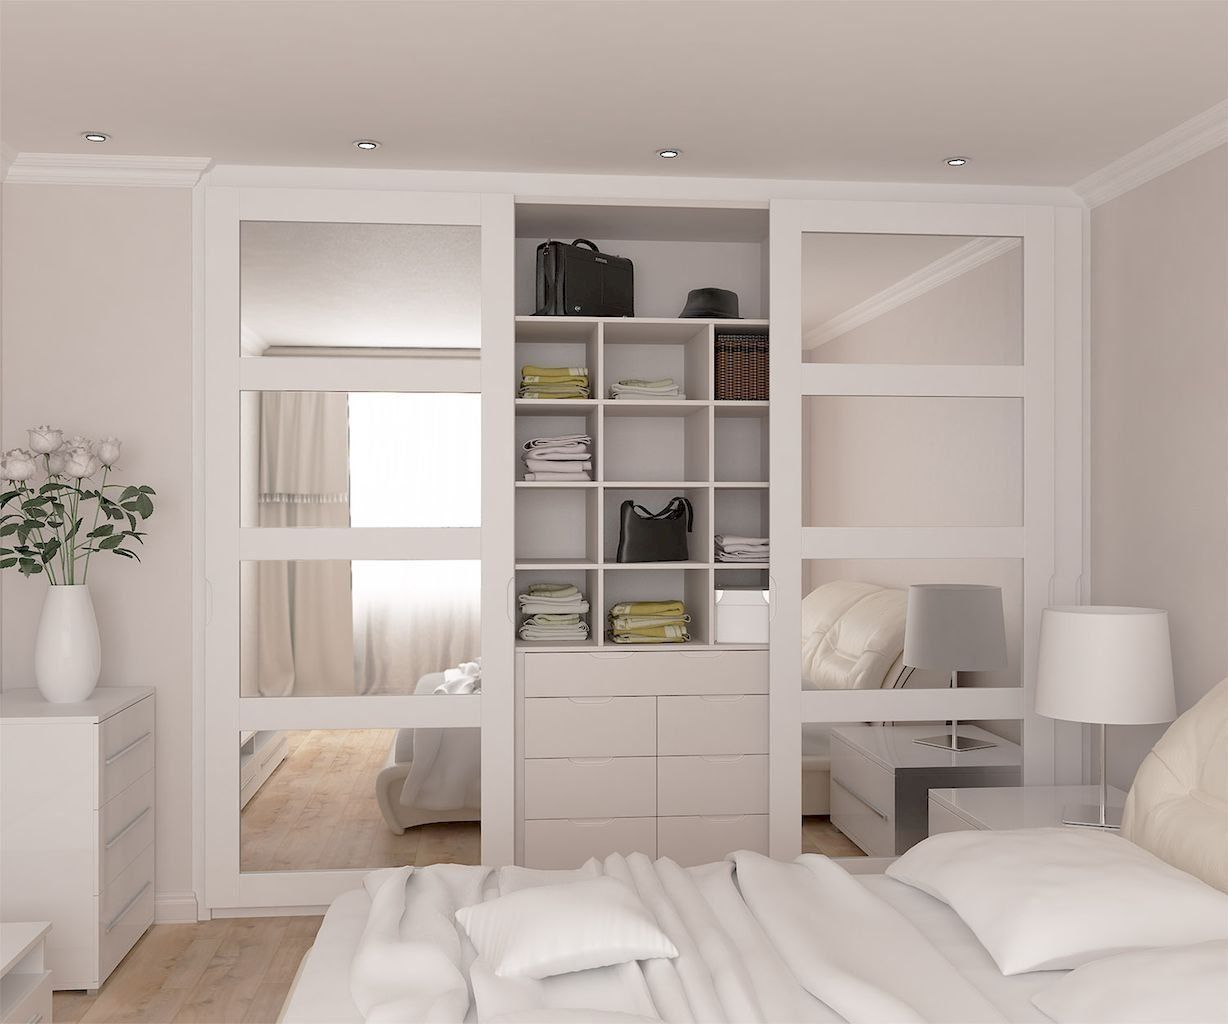 Awesome Closet Door Concepts That Add Model To Your Bed Room Https Homestya Com Closet Apartment Bedroom Decor Bedroom Closet Doors Bedroom Wardrobe Ideas